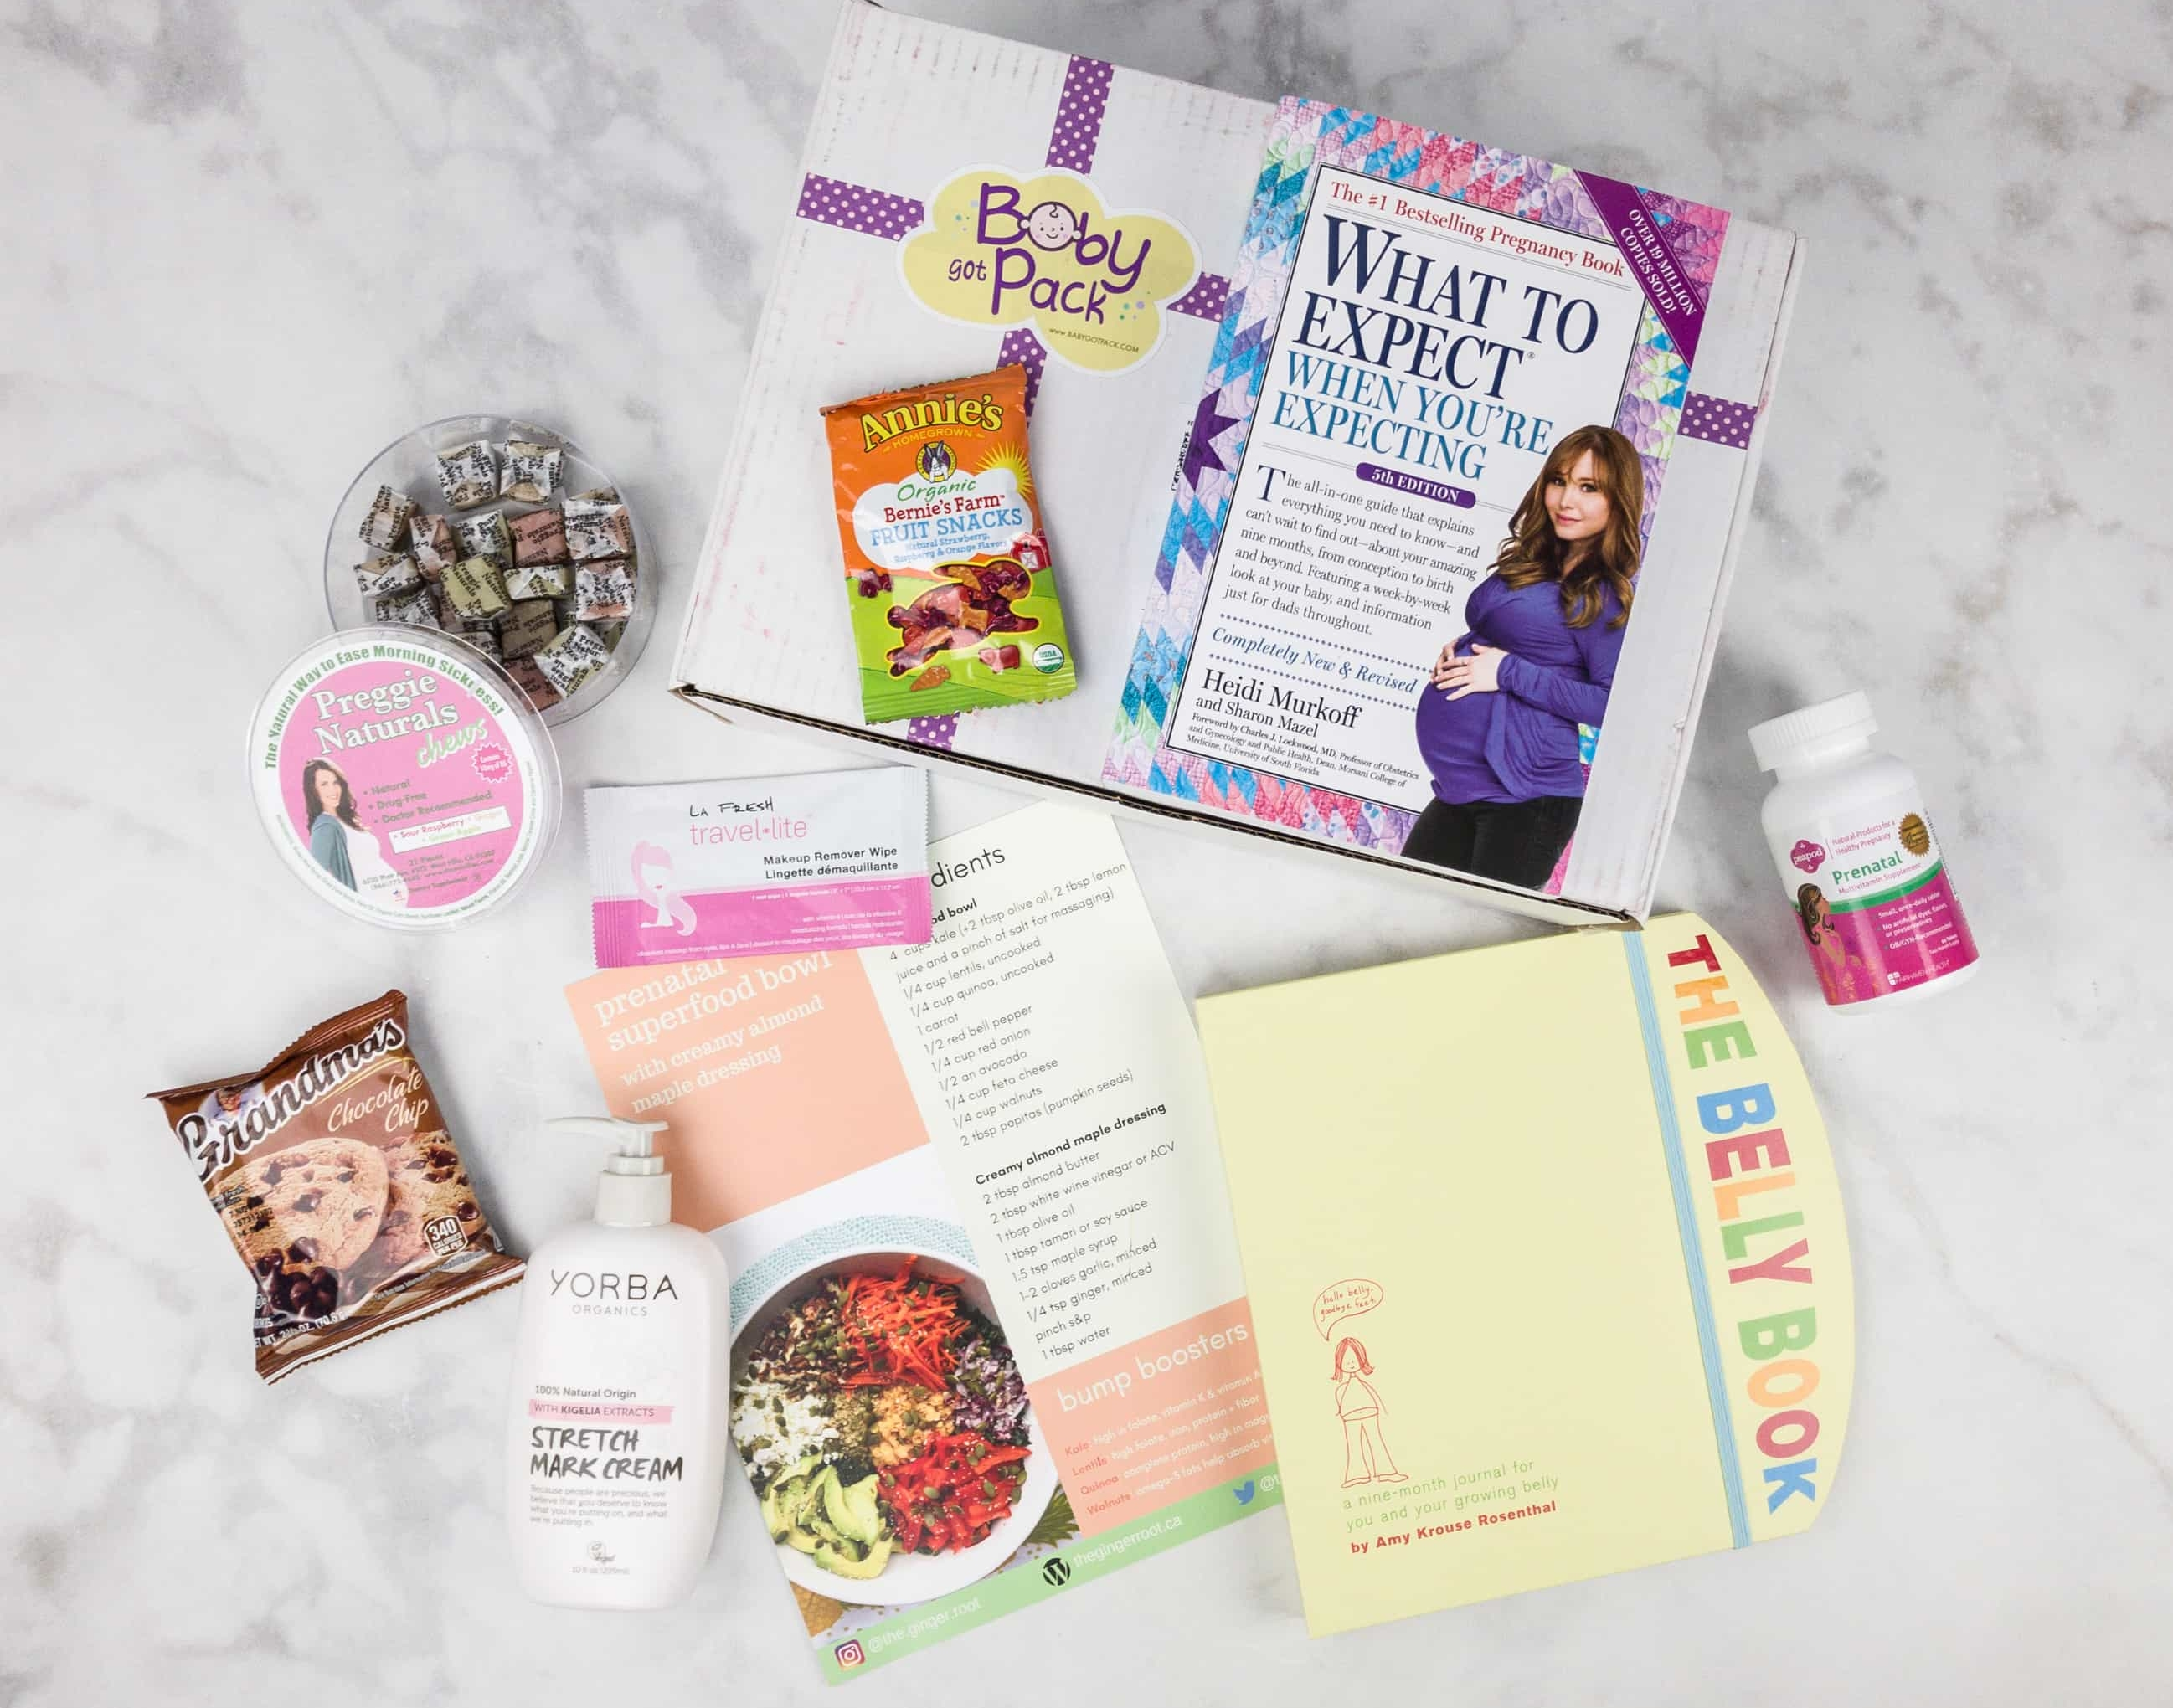 Baby Got Pack Subscription Box Review + Coupon u2013 First Trimester Box & Baby Subscription Box Reviews - hello subscription Aboutintivar.Com